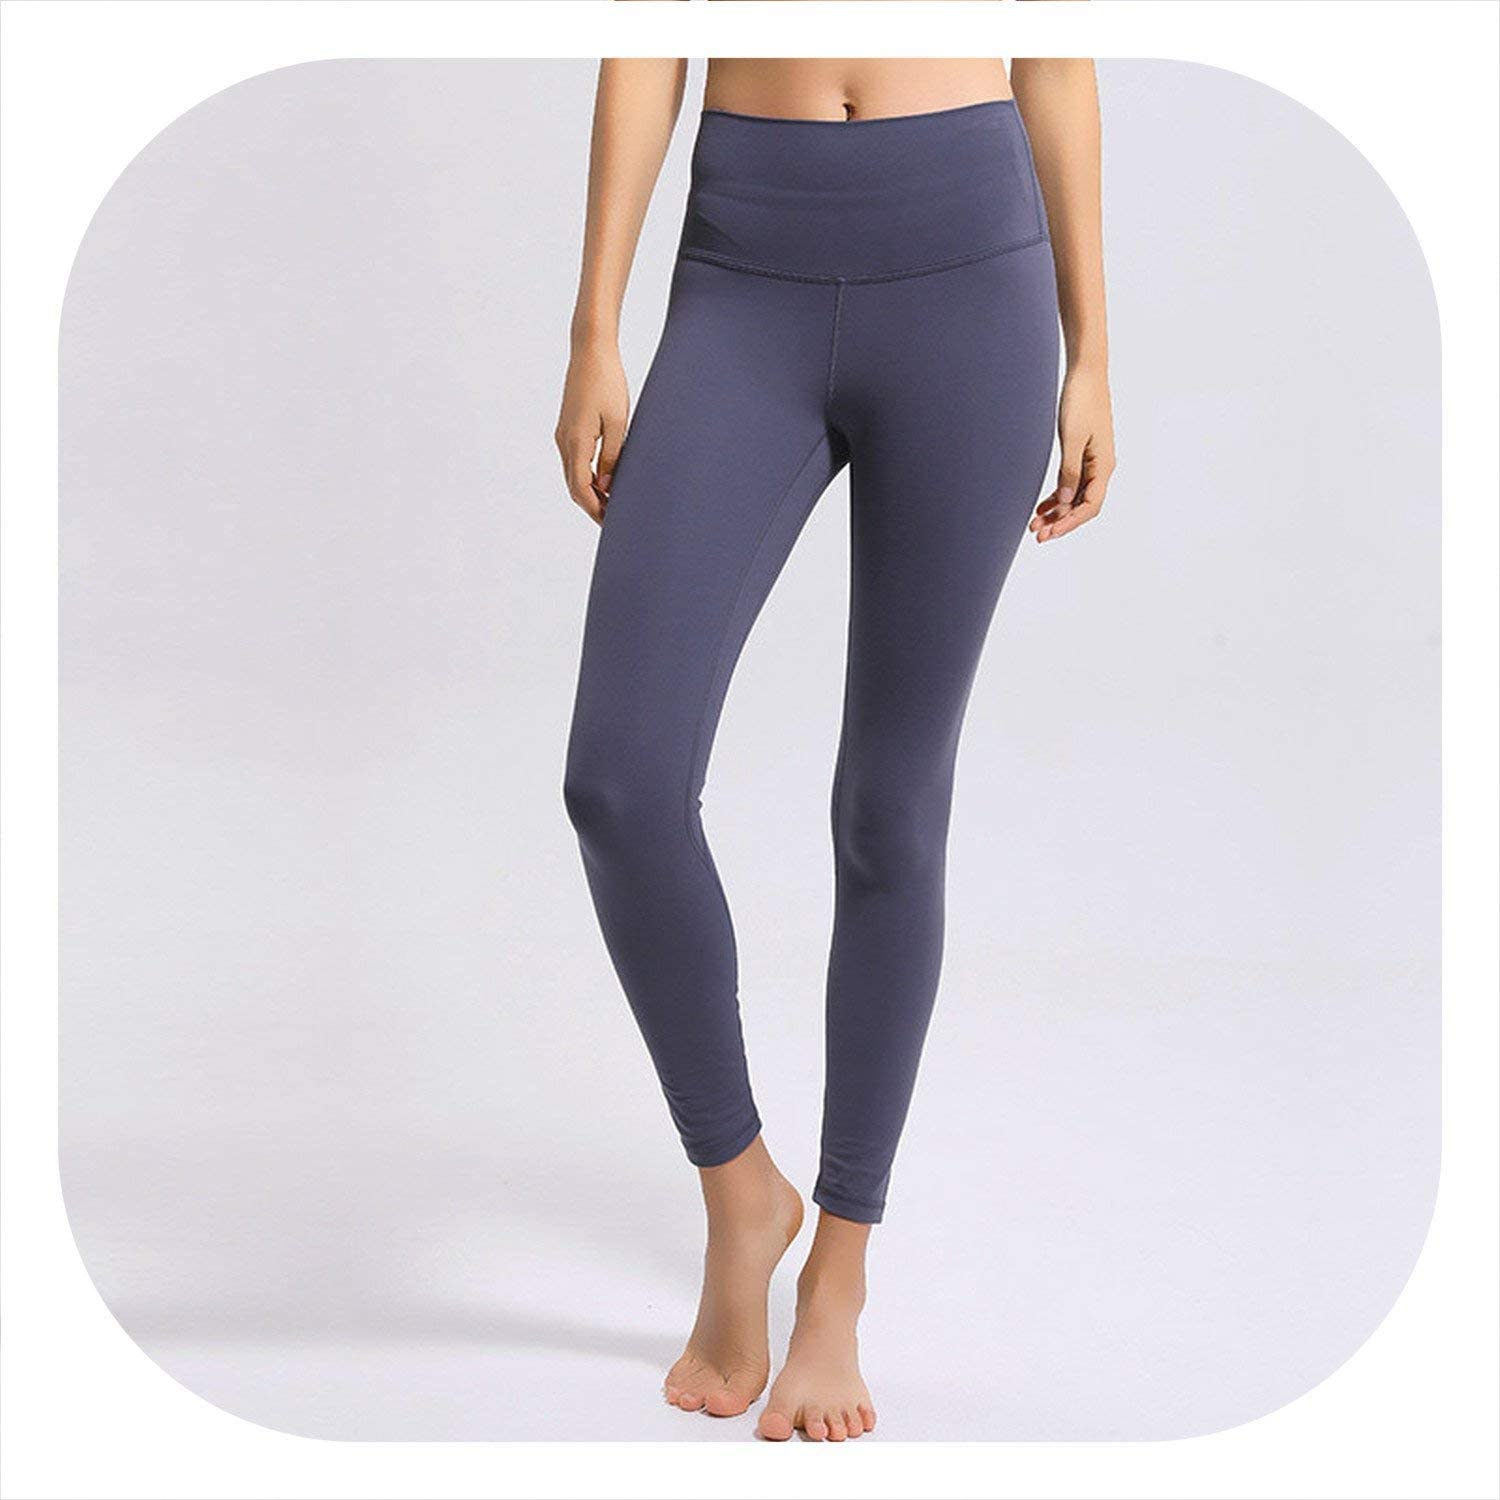 Brave pinkmary Soft NakedFeel Athletic Fitness Leggings Women Stretchy High Waist Gym Sport Tights Yoga Pants